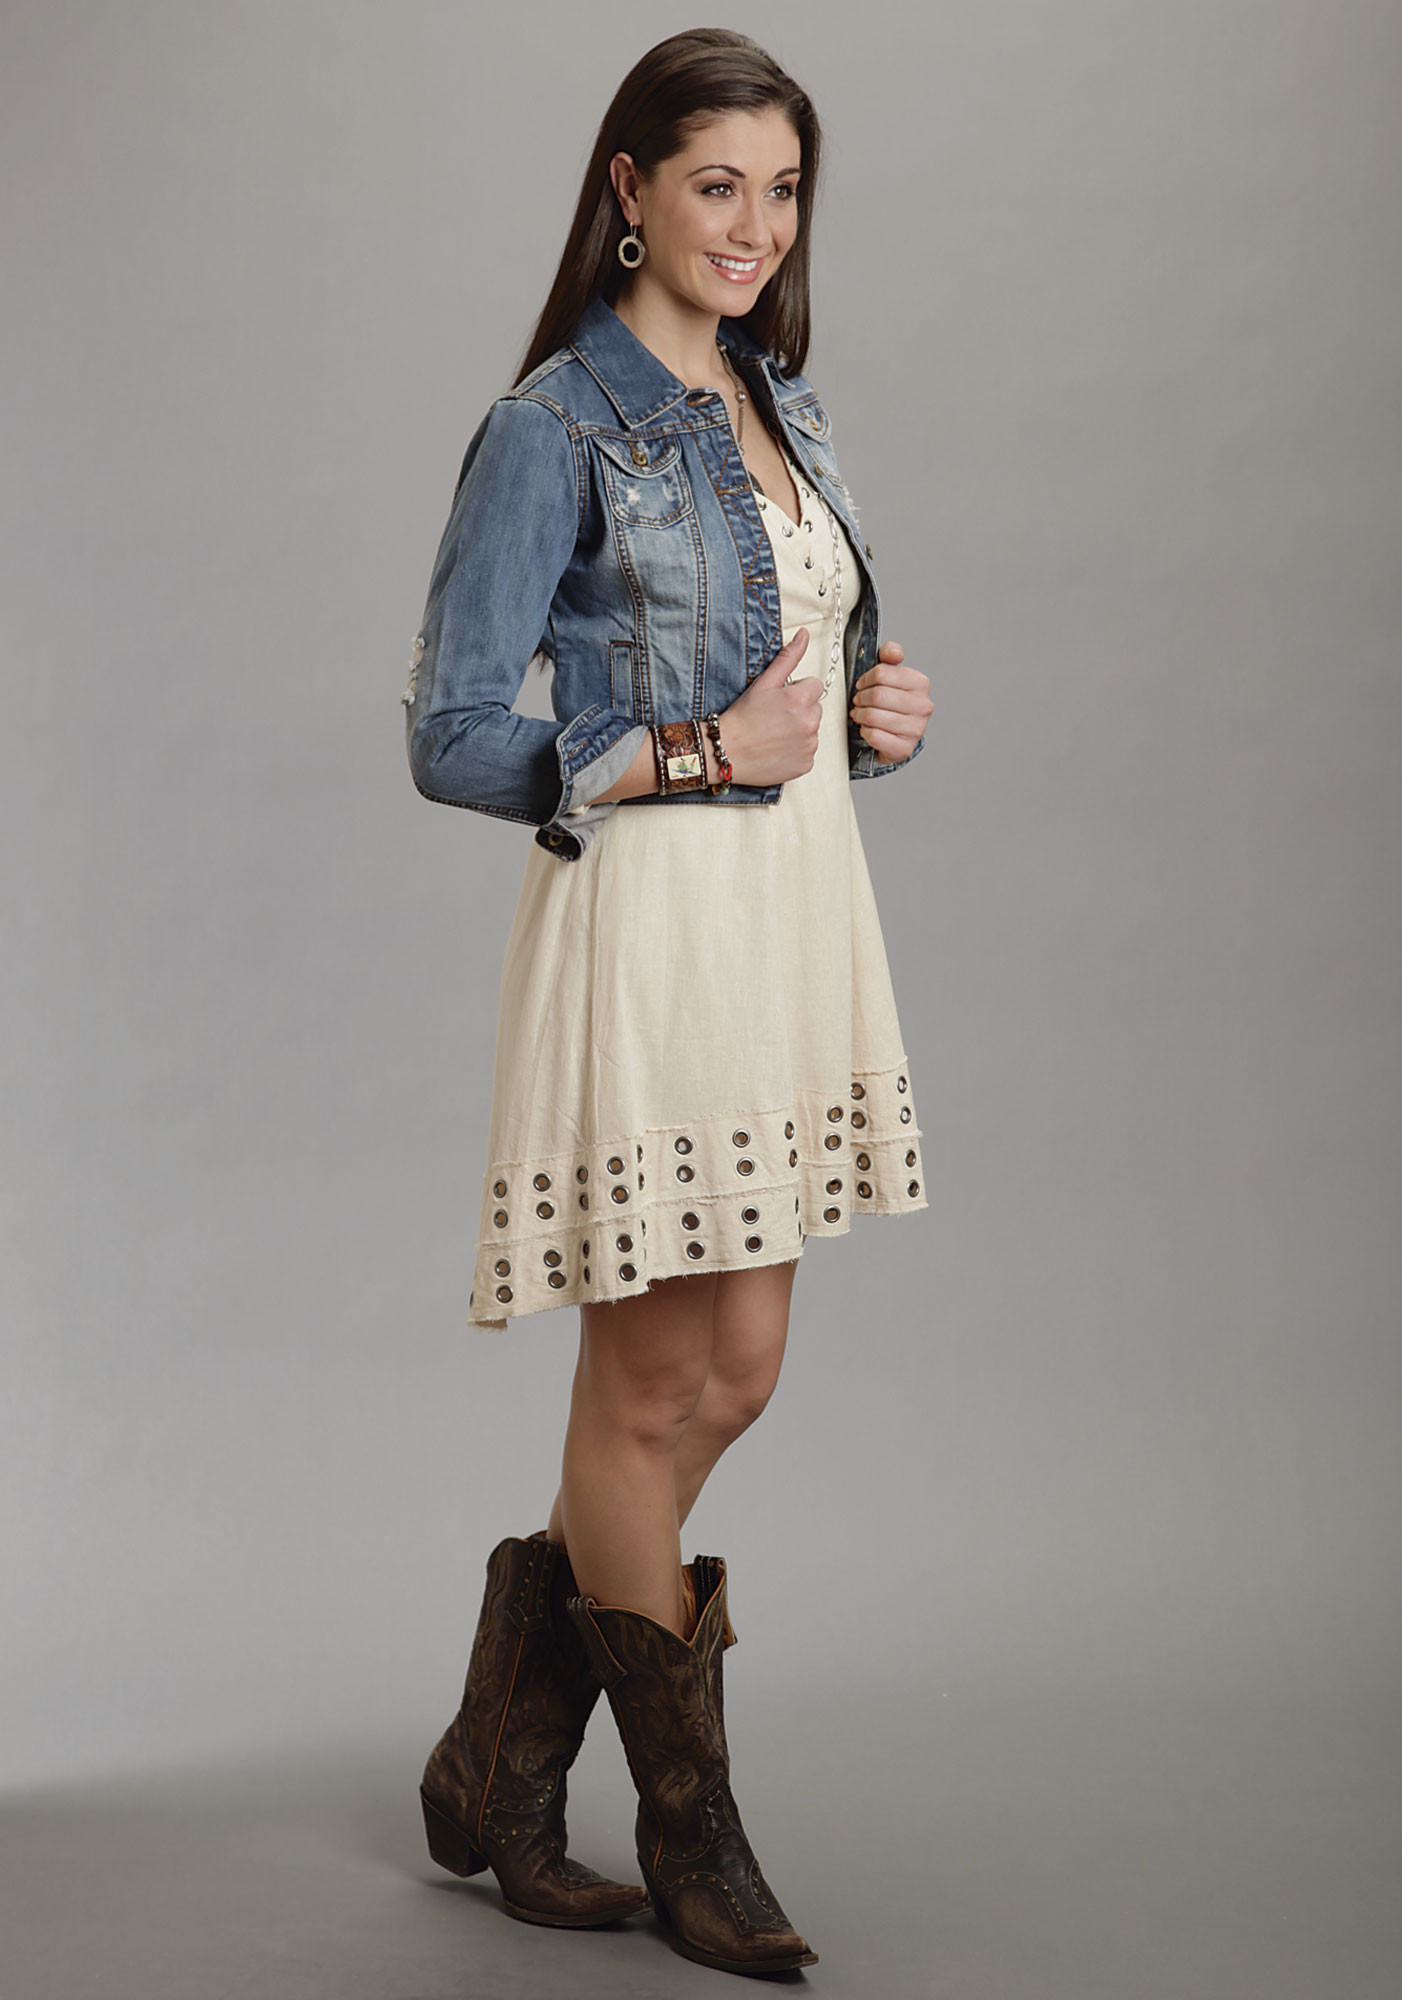 plus size attire zulily